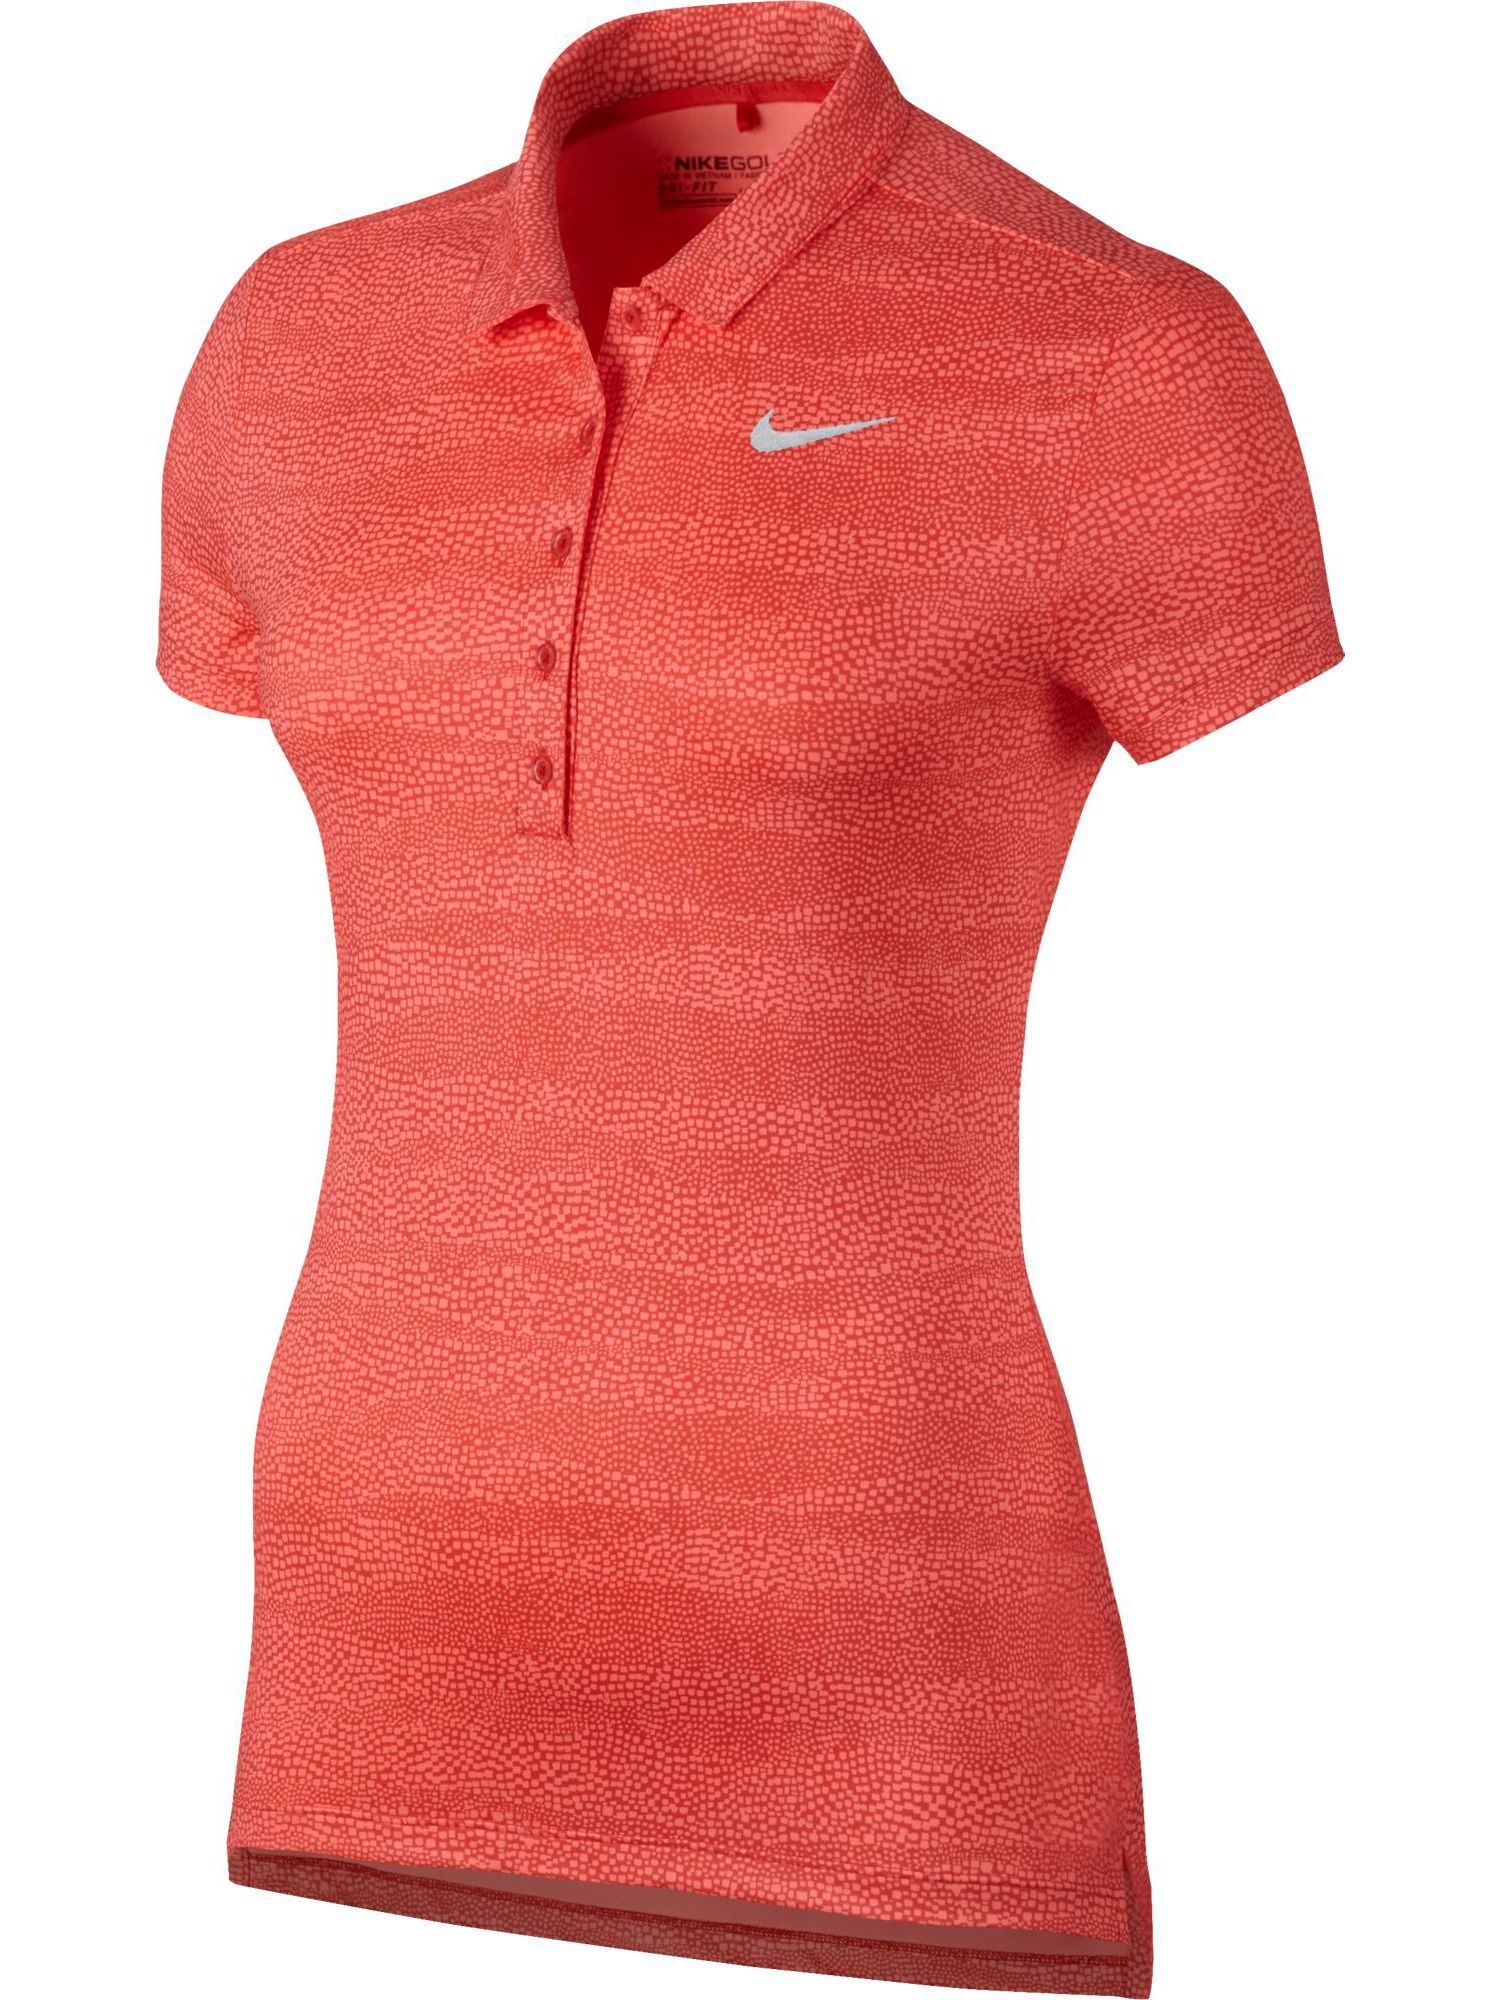 Nike Golf Precision Zebra Print Golf Polo, Orange